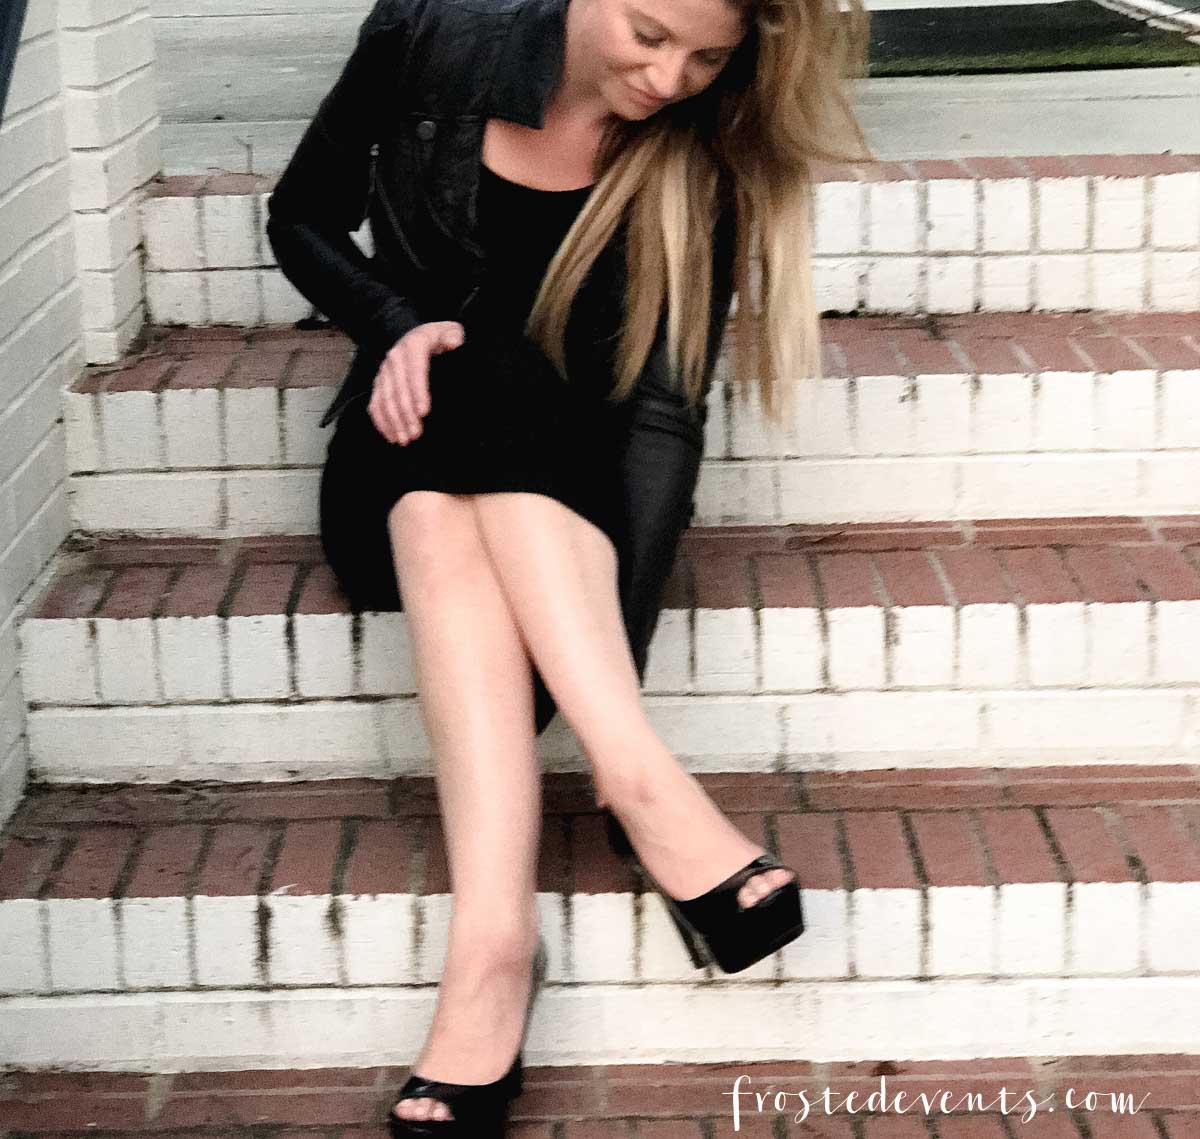 10cfe9d4a84d2 New York Fashion Week NYC September Fashion Blogger Style Influencer Misty  Nelson on Wearing High Heels